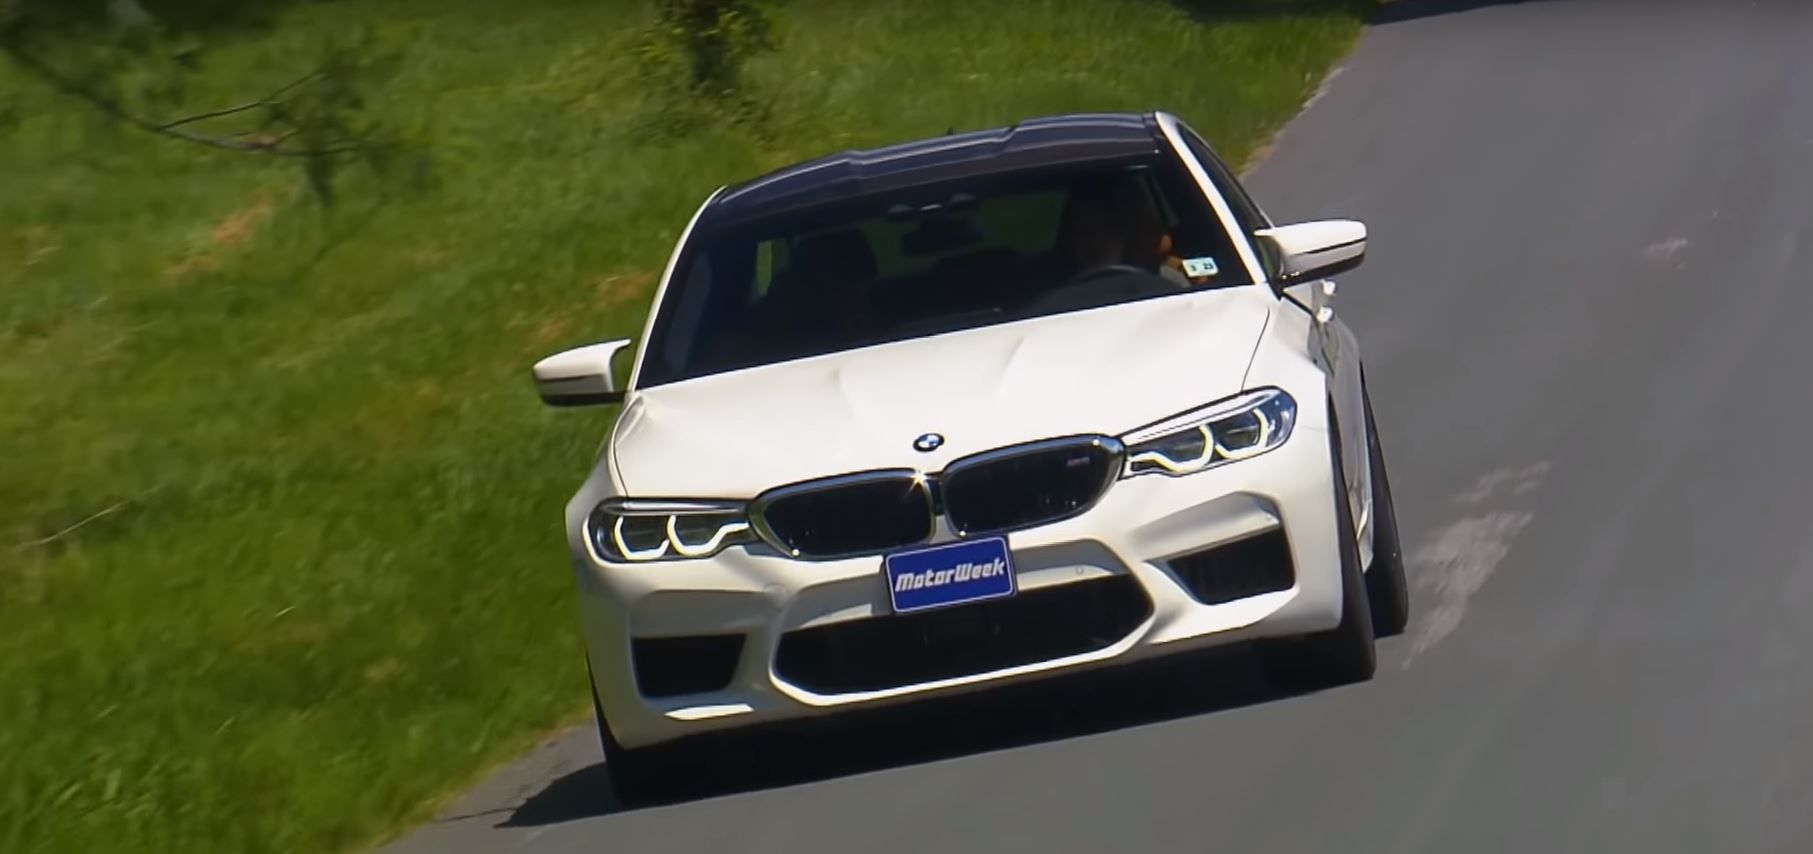 Video Motorweek Tests The New Bmw M5 On The Road And Track Bmw